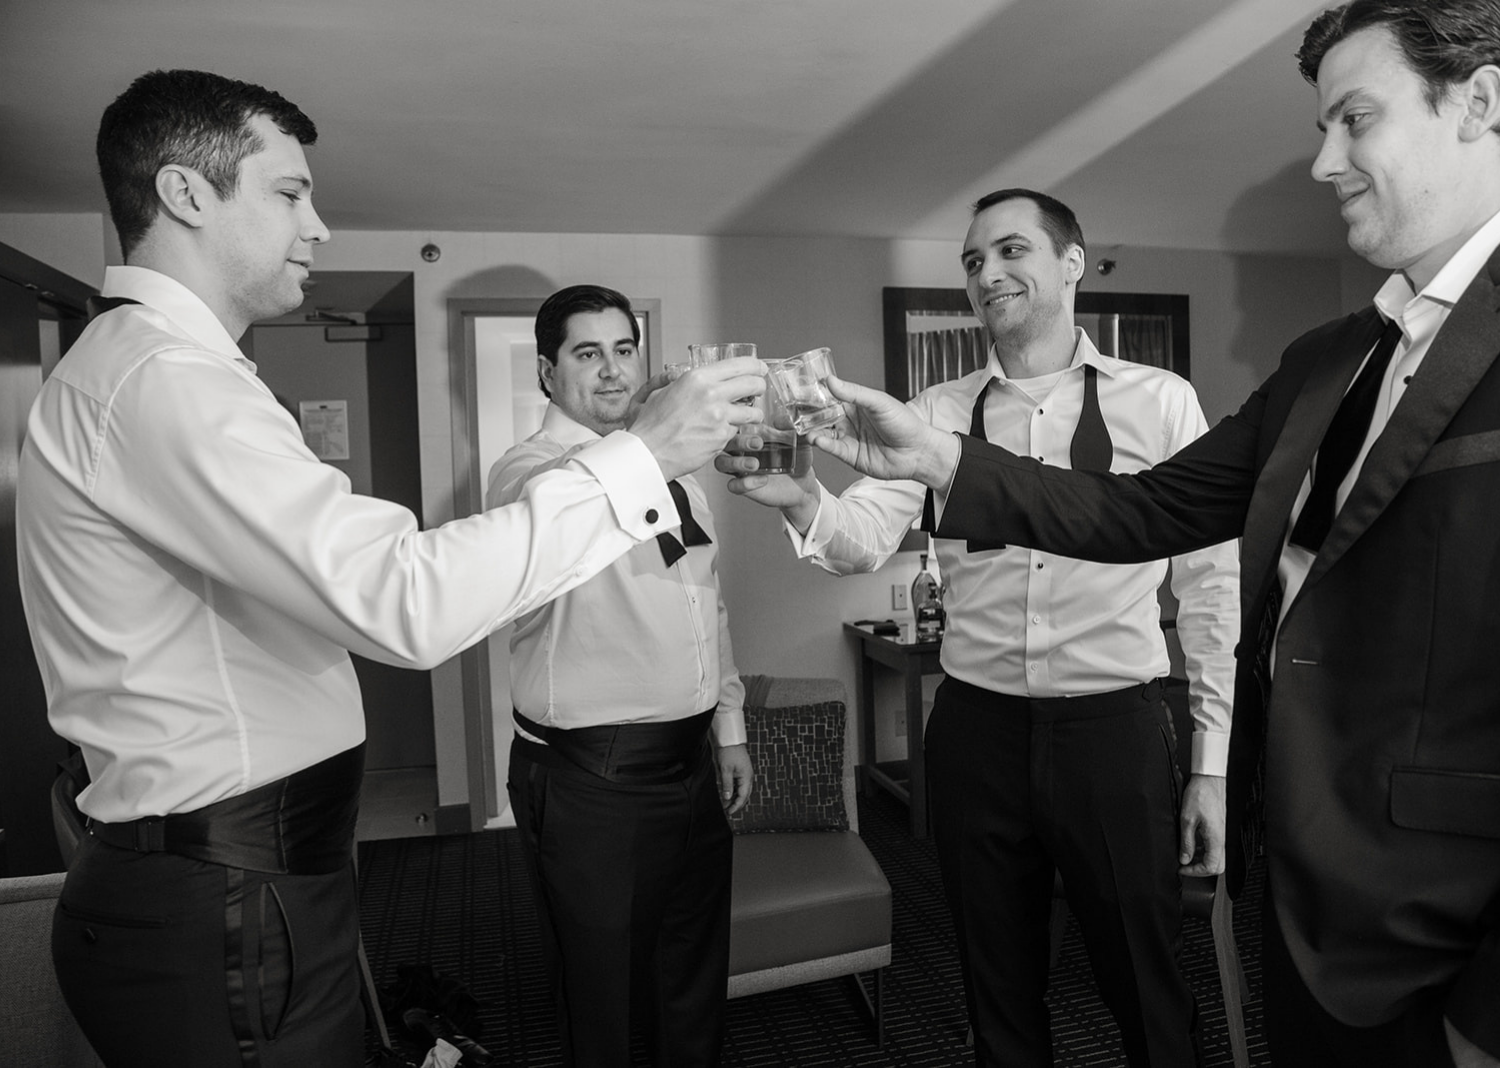 groom and groomsmen sharing a drink and a toast before the wedding